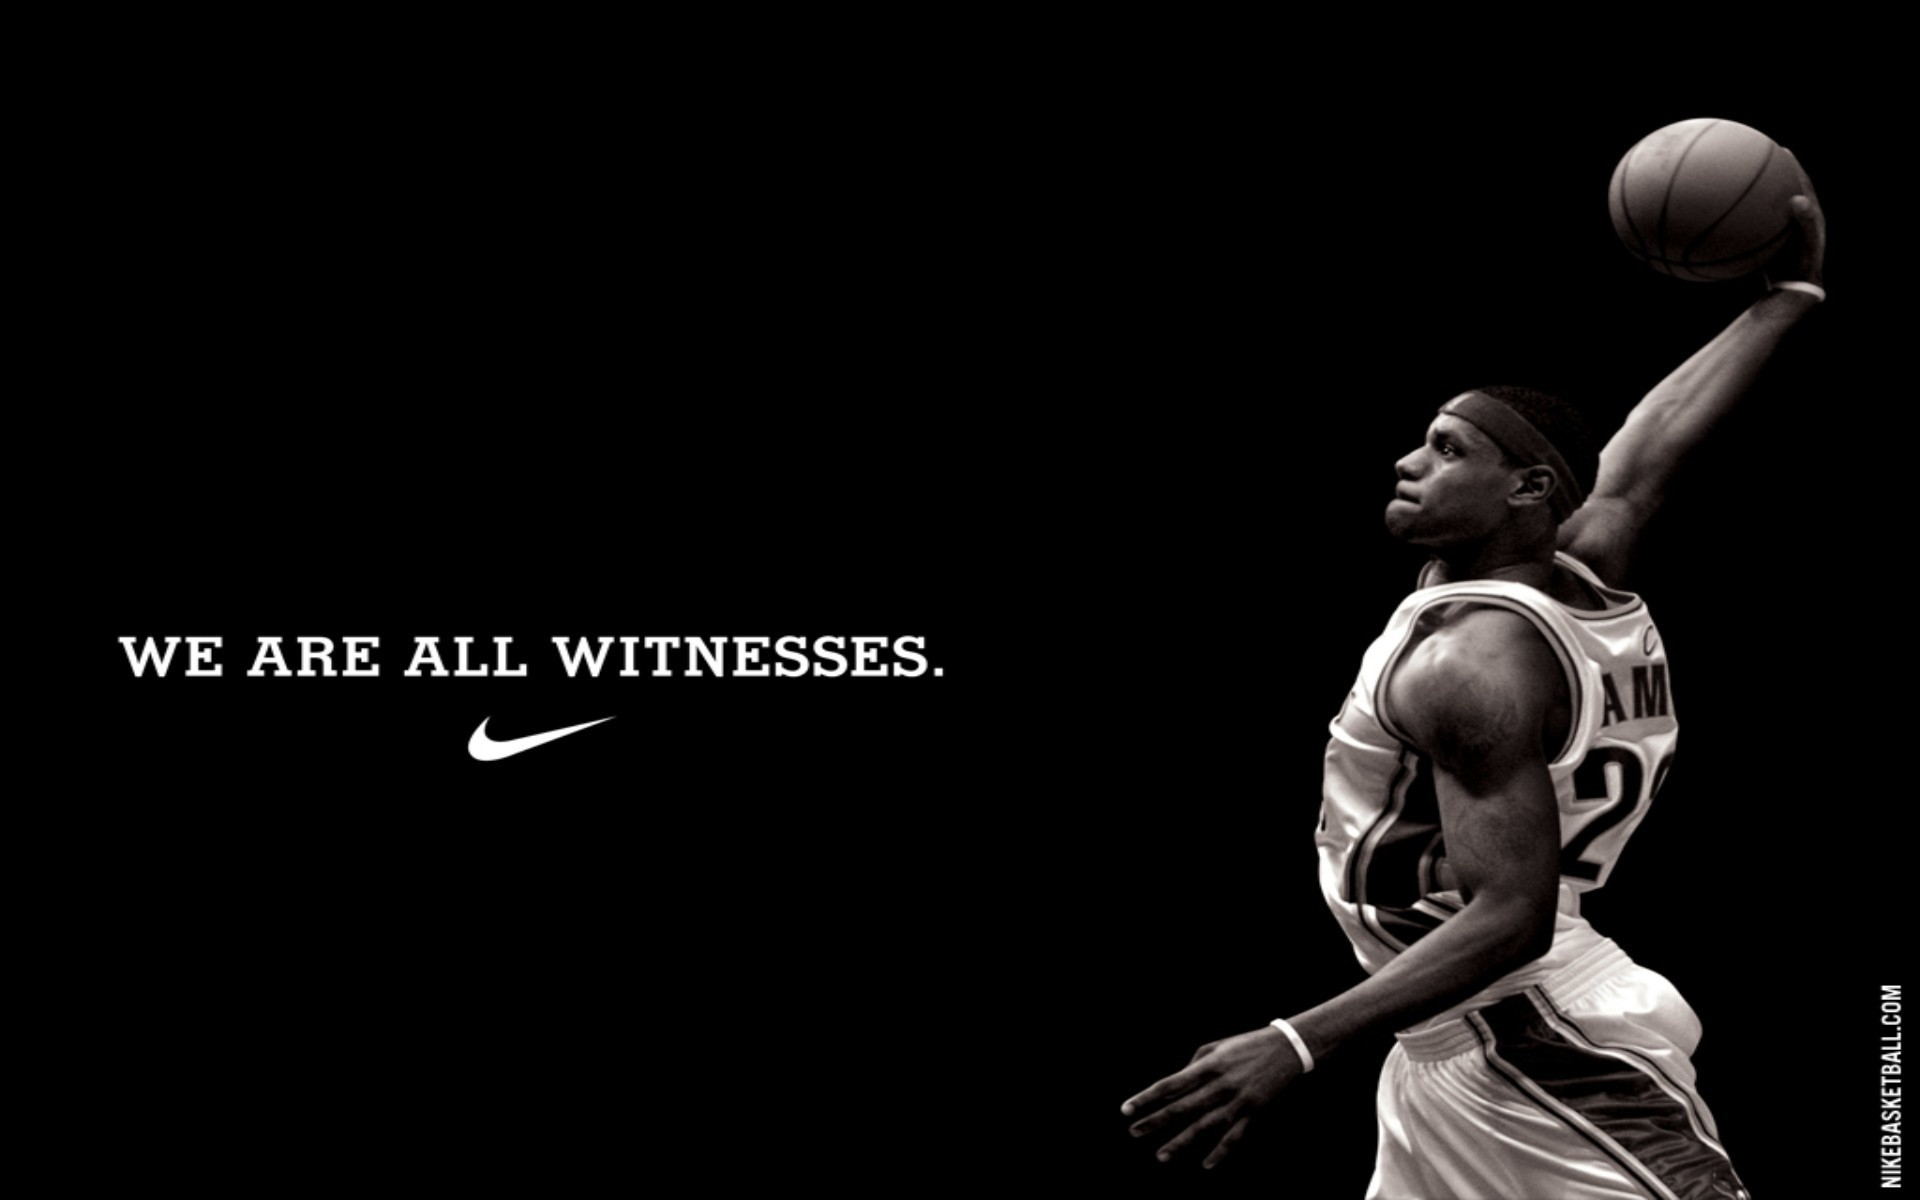 1920x1200 Lebron James We Are All Witnesses wallpaper